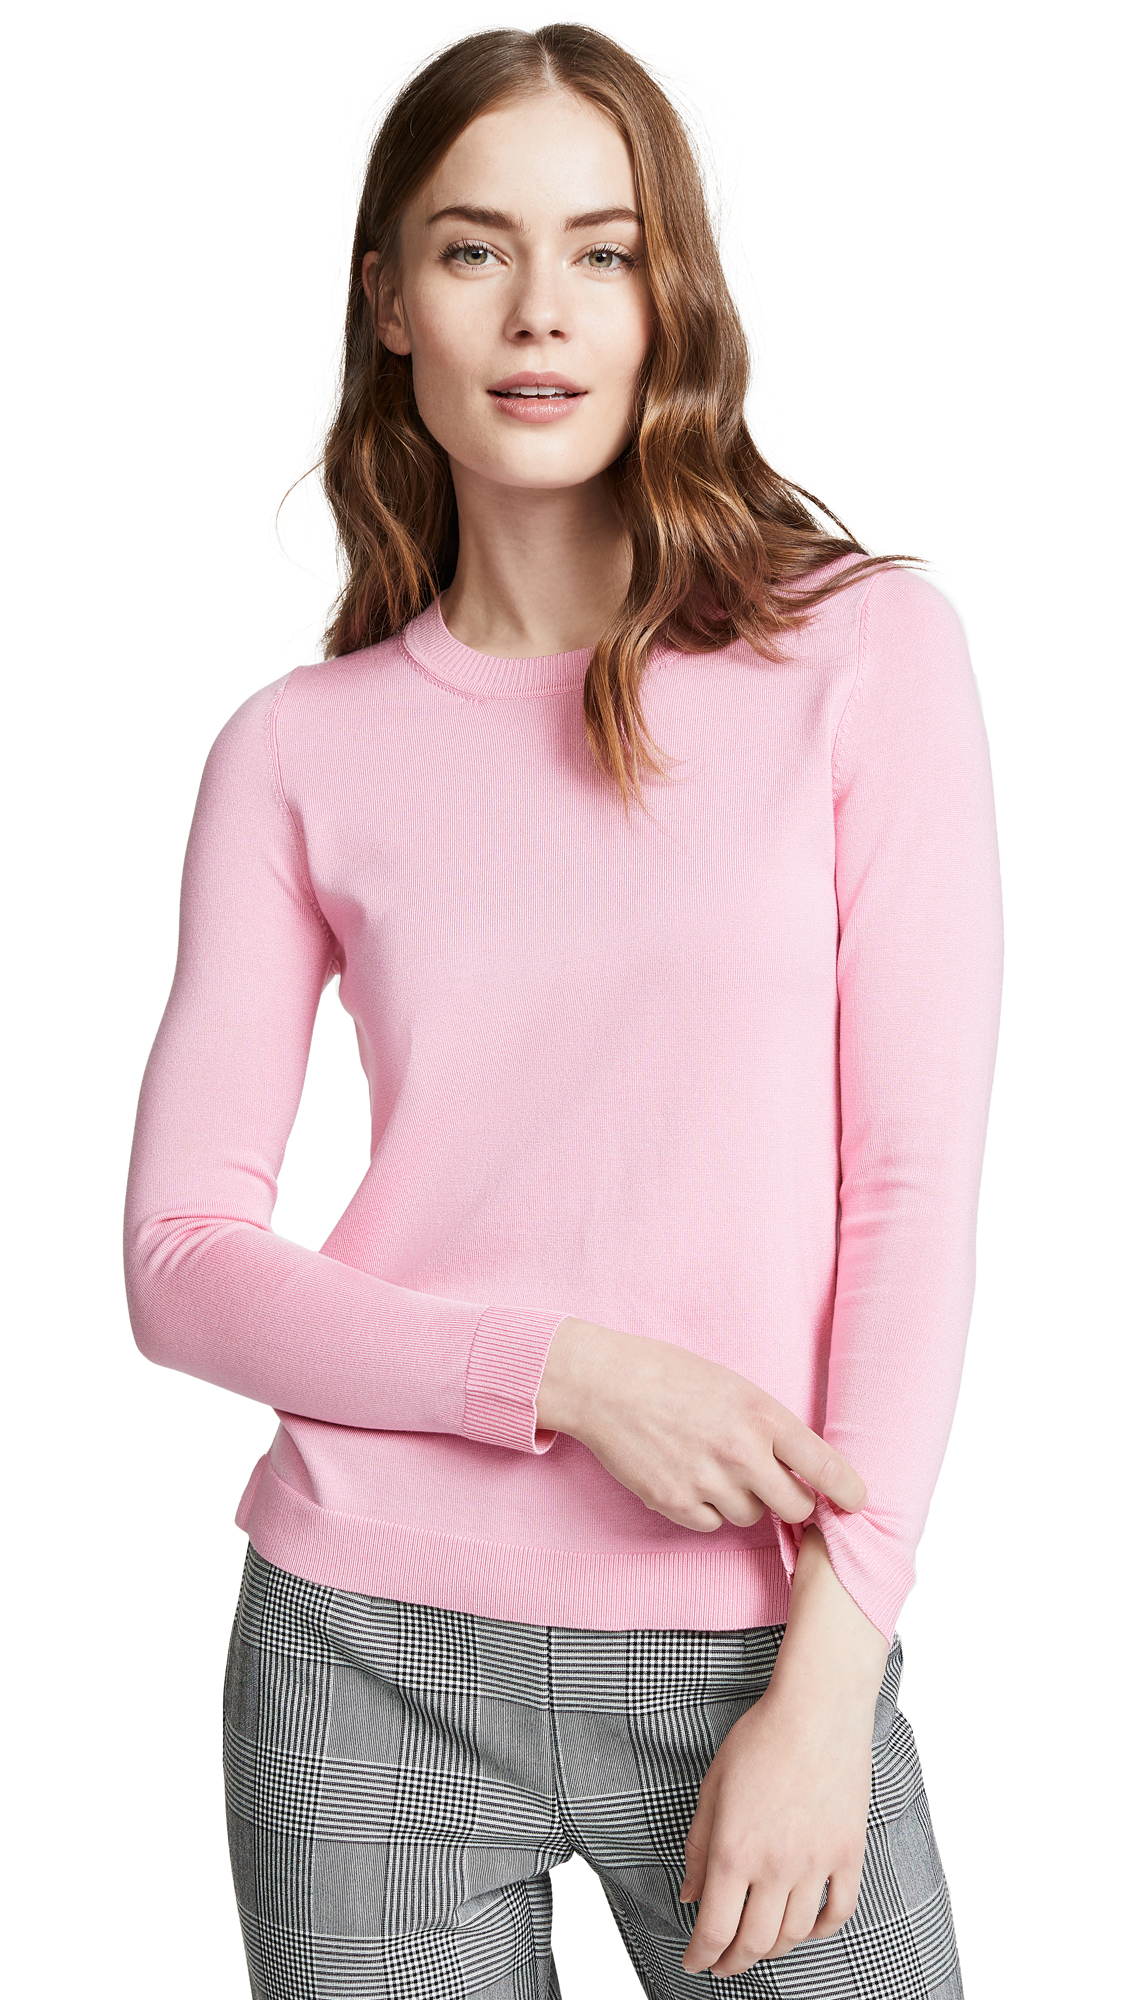 525 AMERICA Crew Neck Sweater in Pink